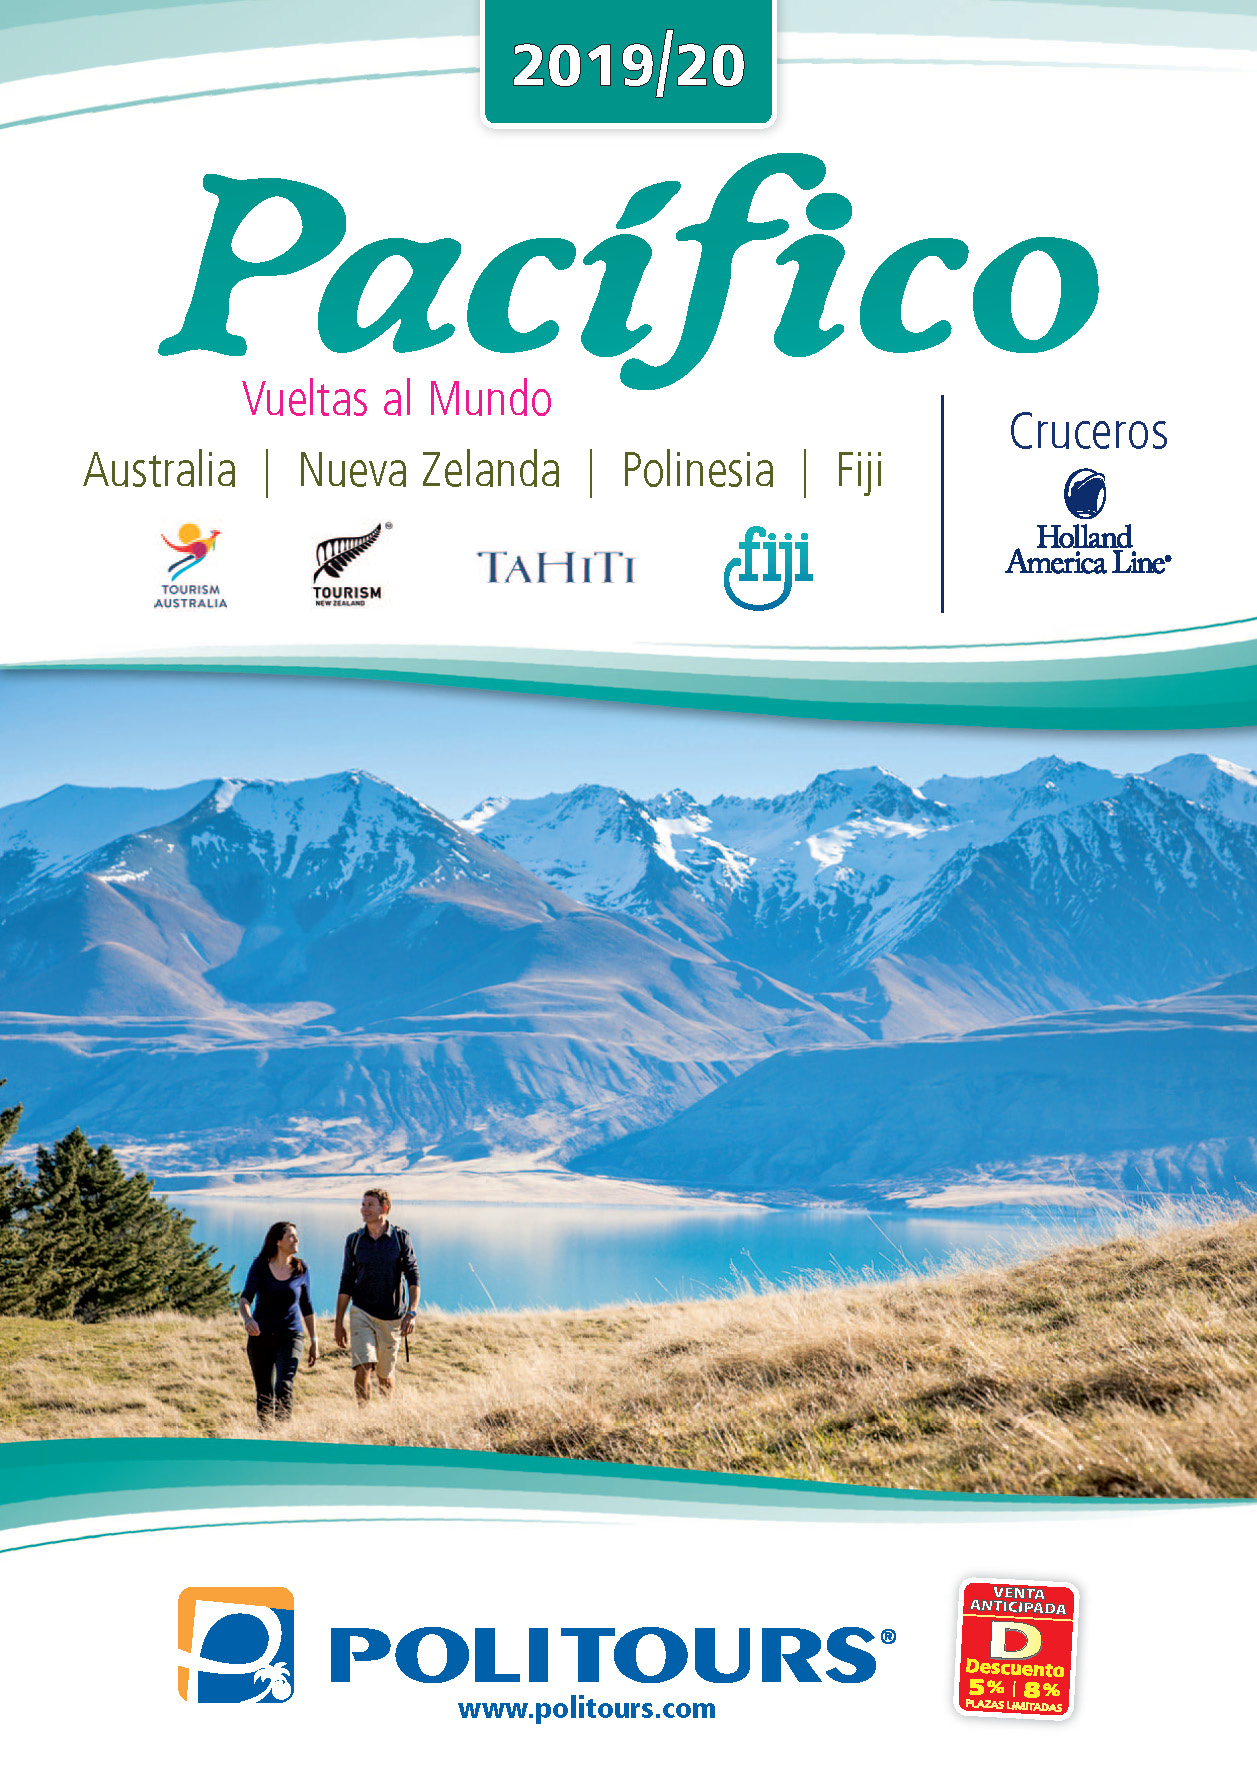 Catalogo Politours Pacifico 2019-2020